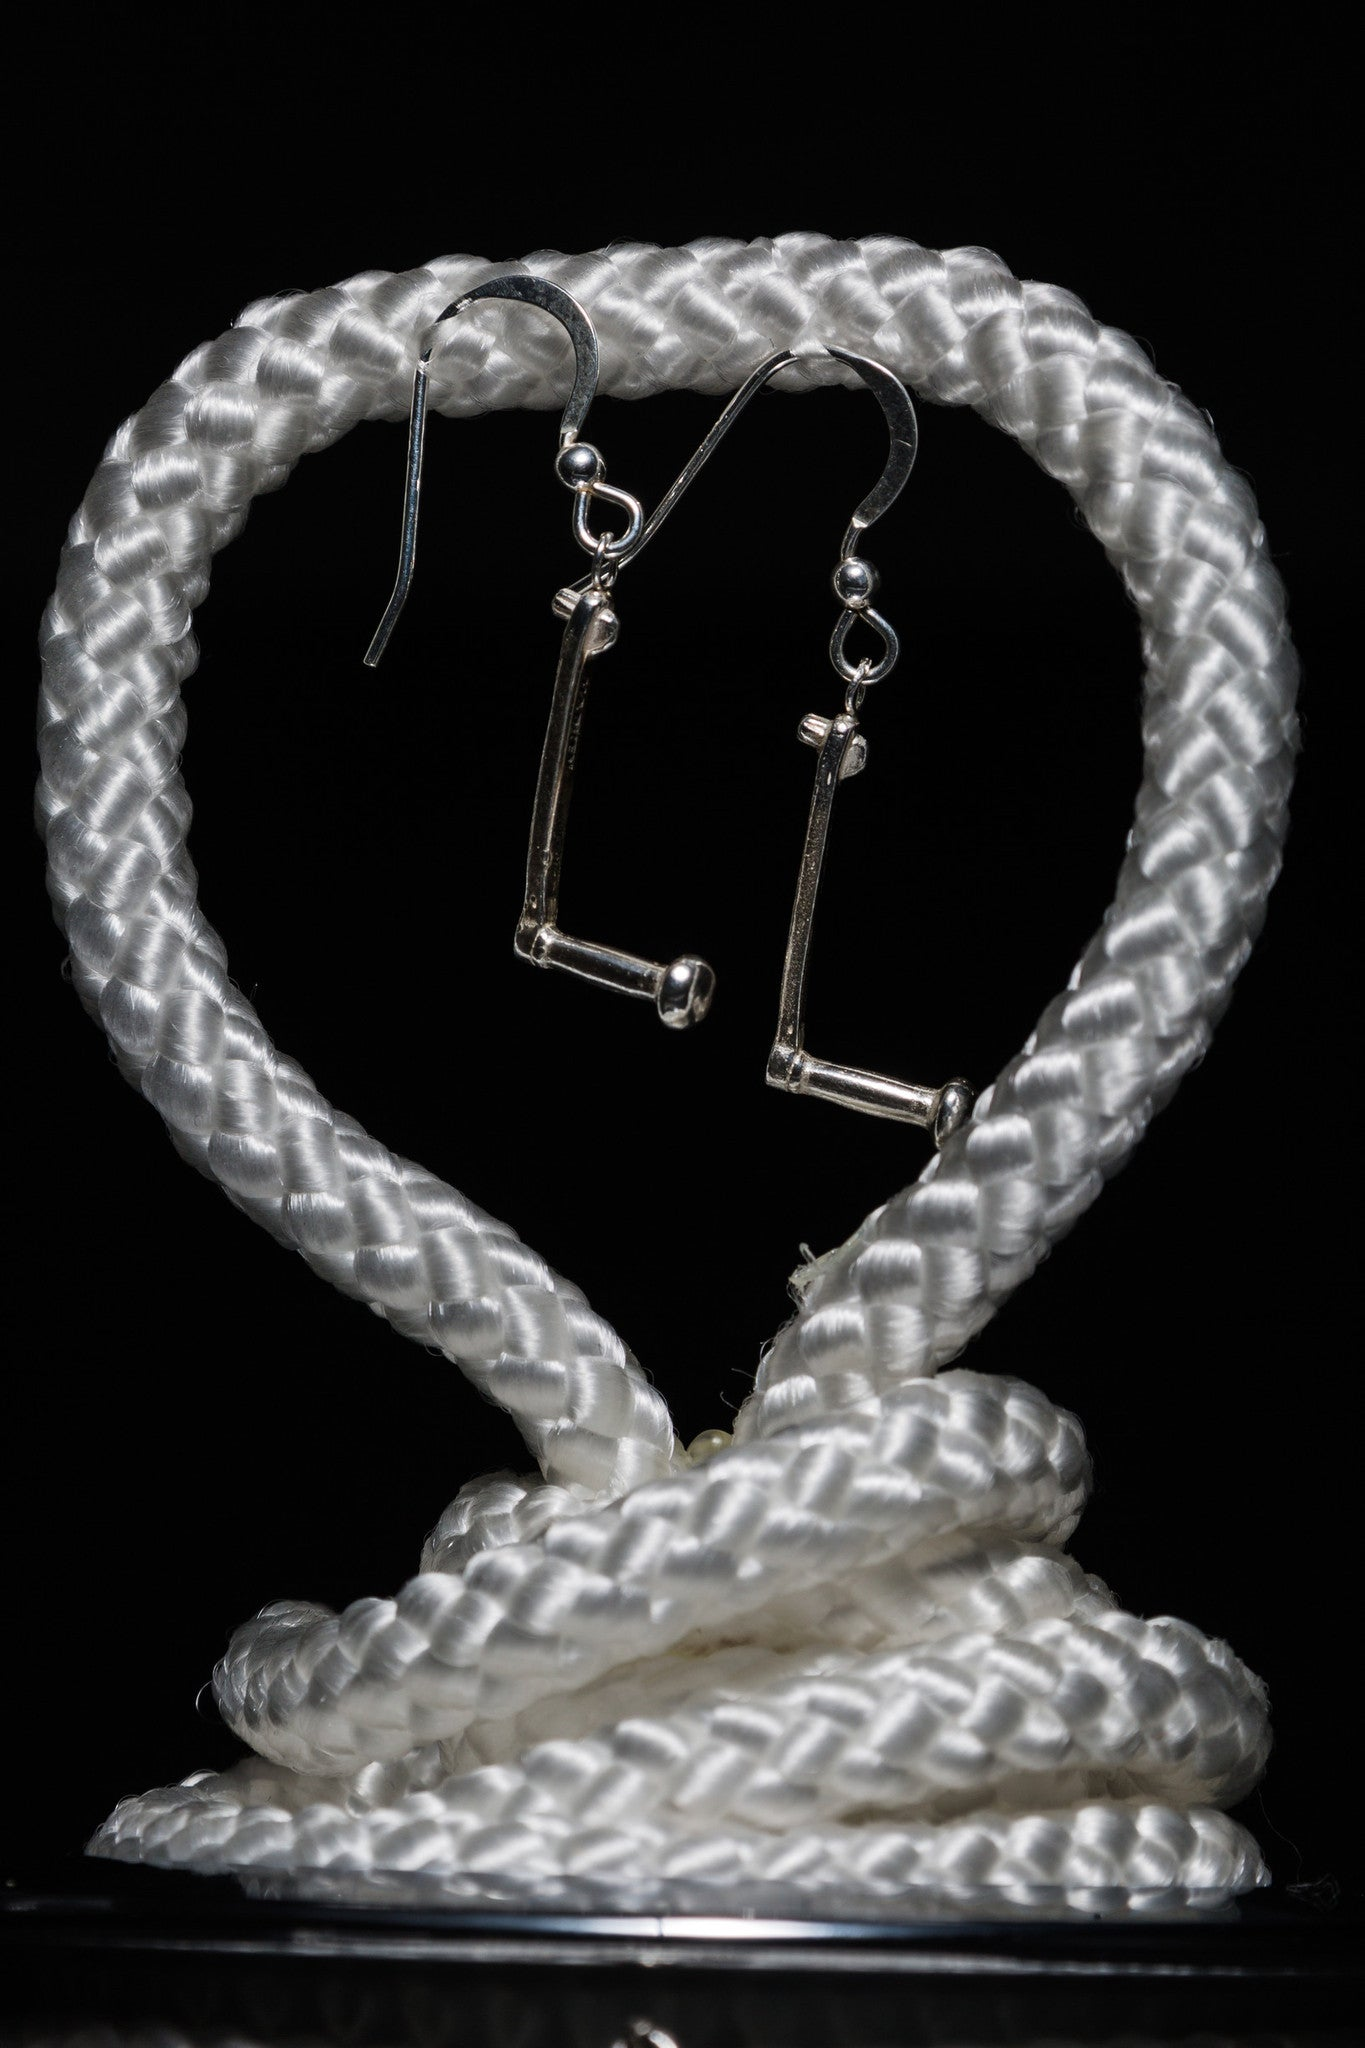 Harken Silver Winch Handle Earrings